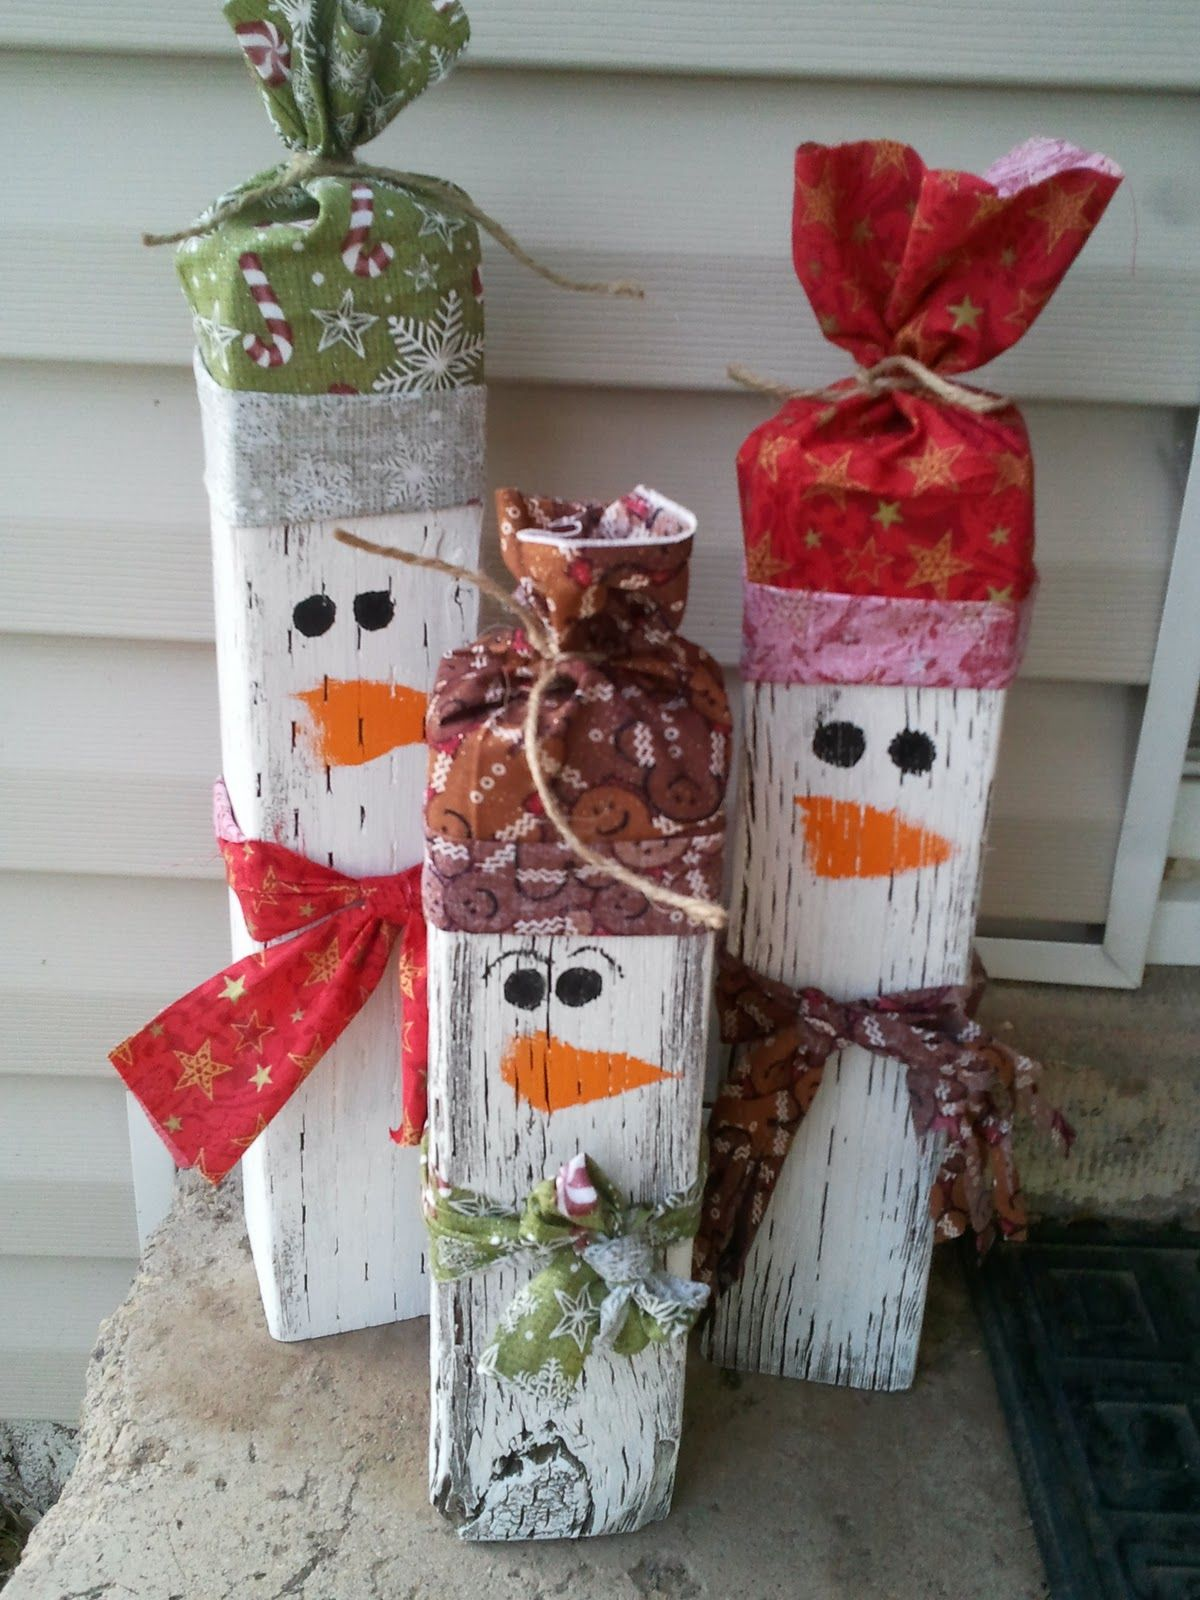 I am totally making these. Not only do I <3 snowmen decor but I have the 4x4s to make these cute guys!